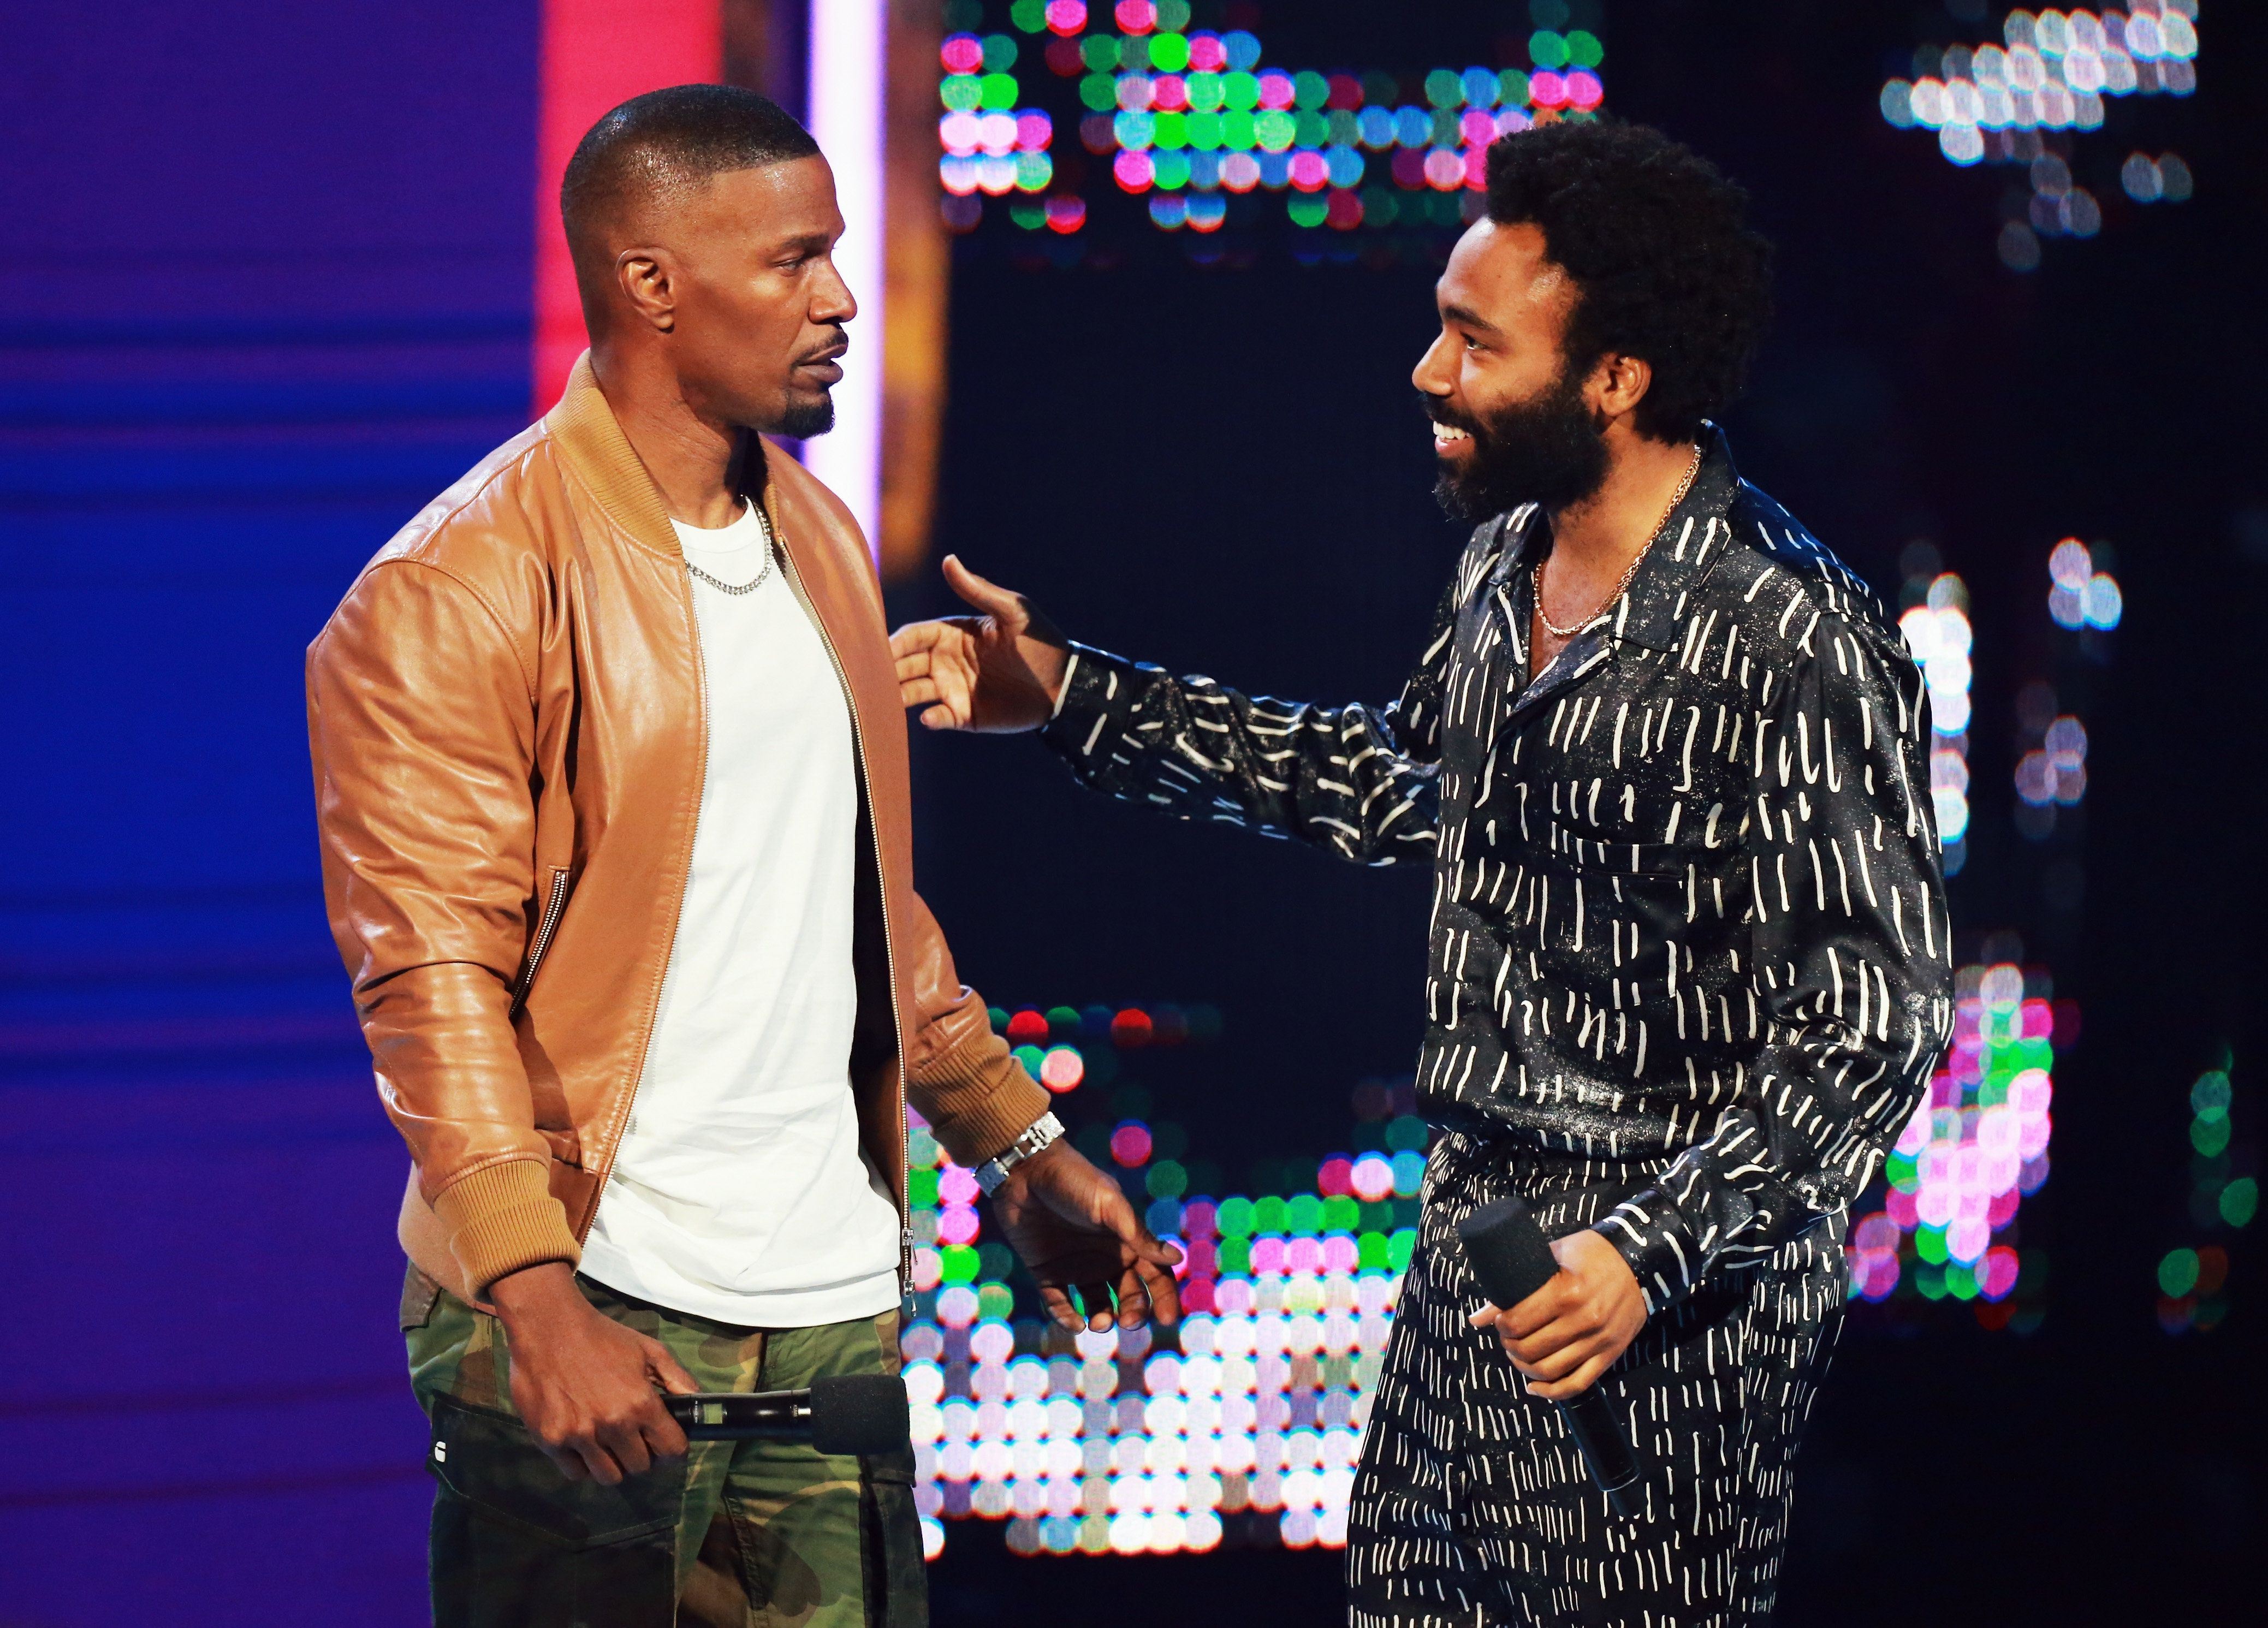 Host Jamie Foxx and Donald Glover onstage at the BET Awards.